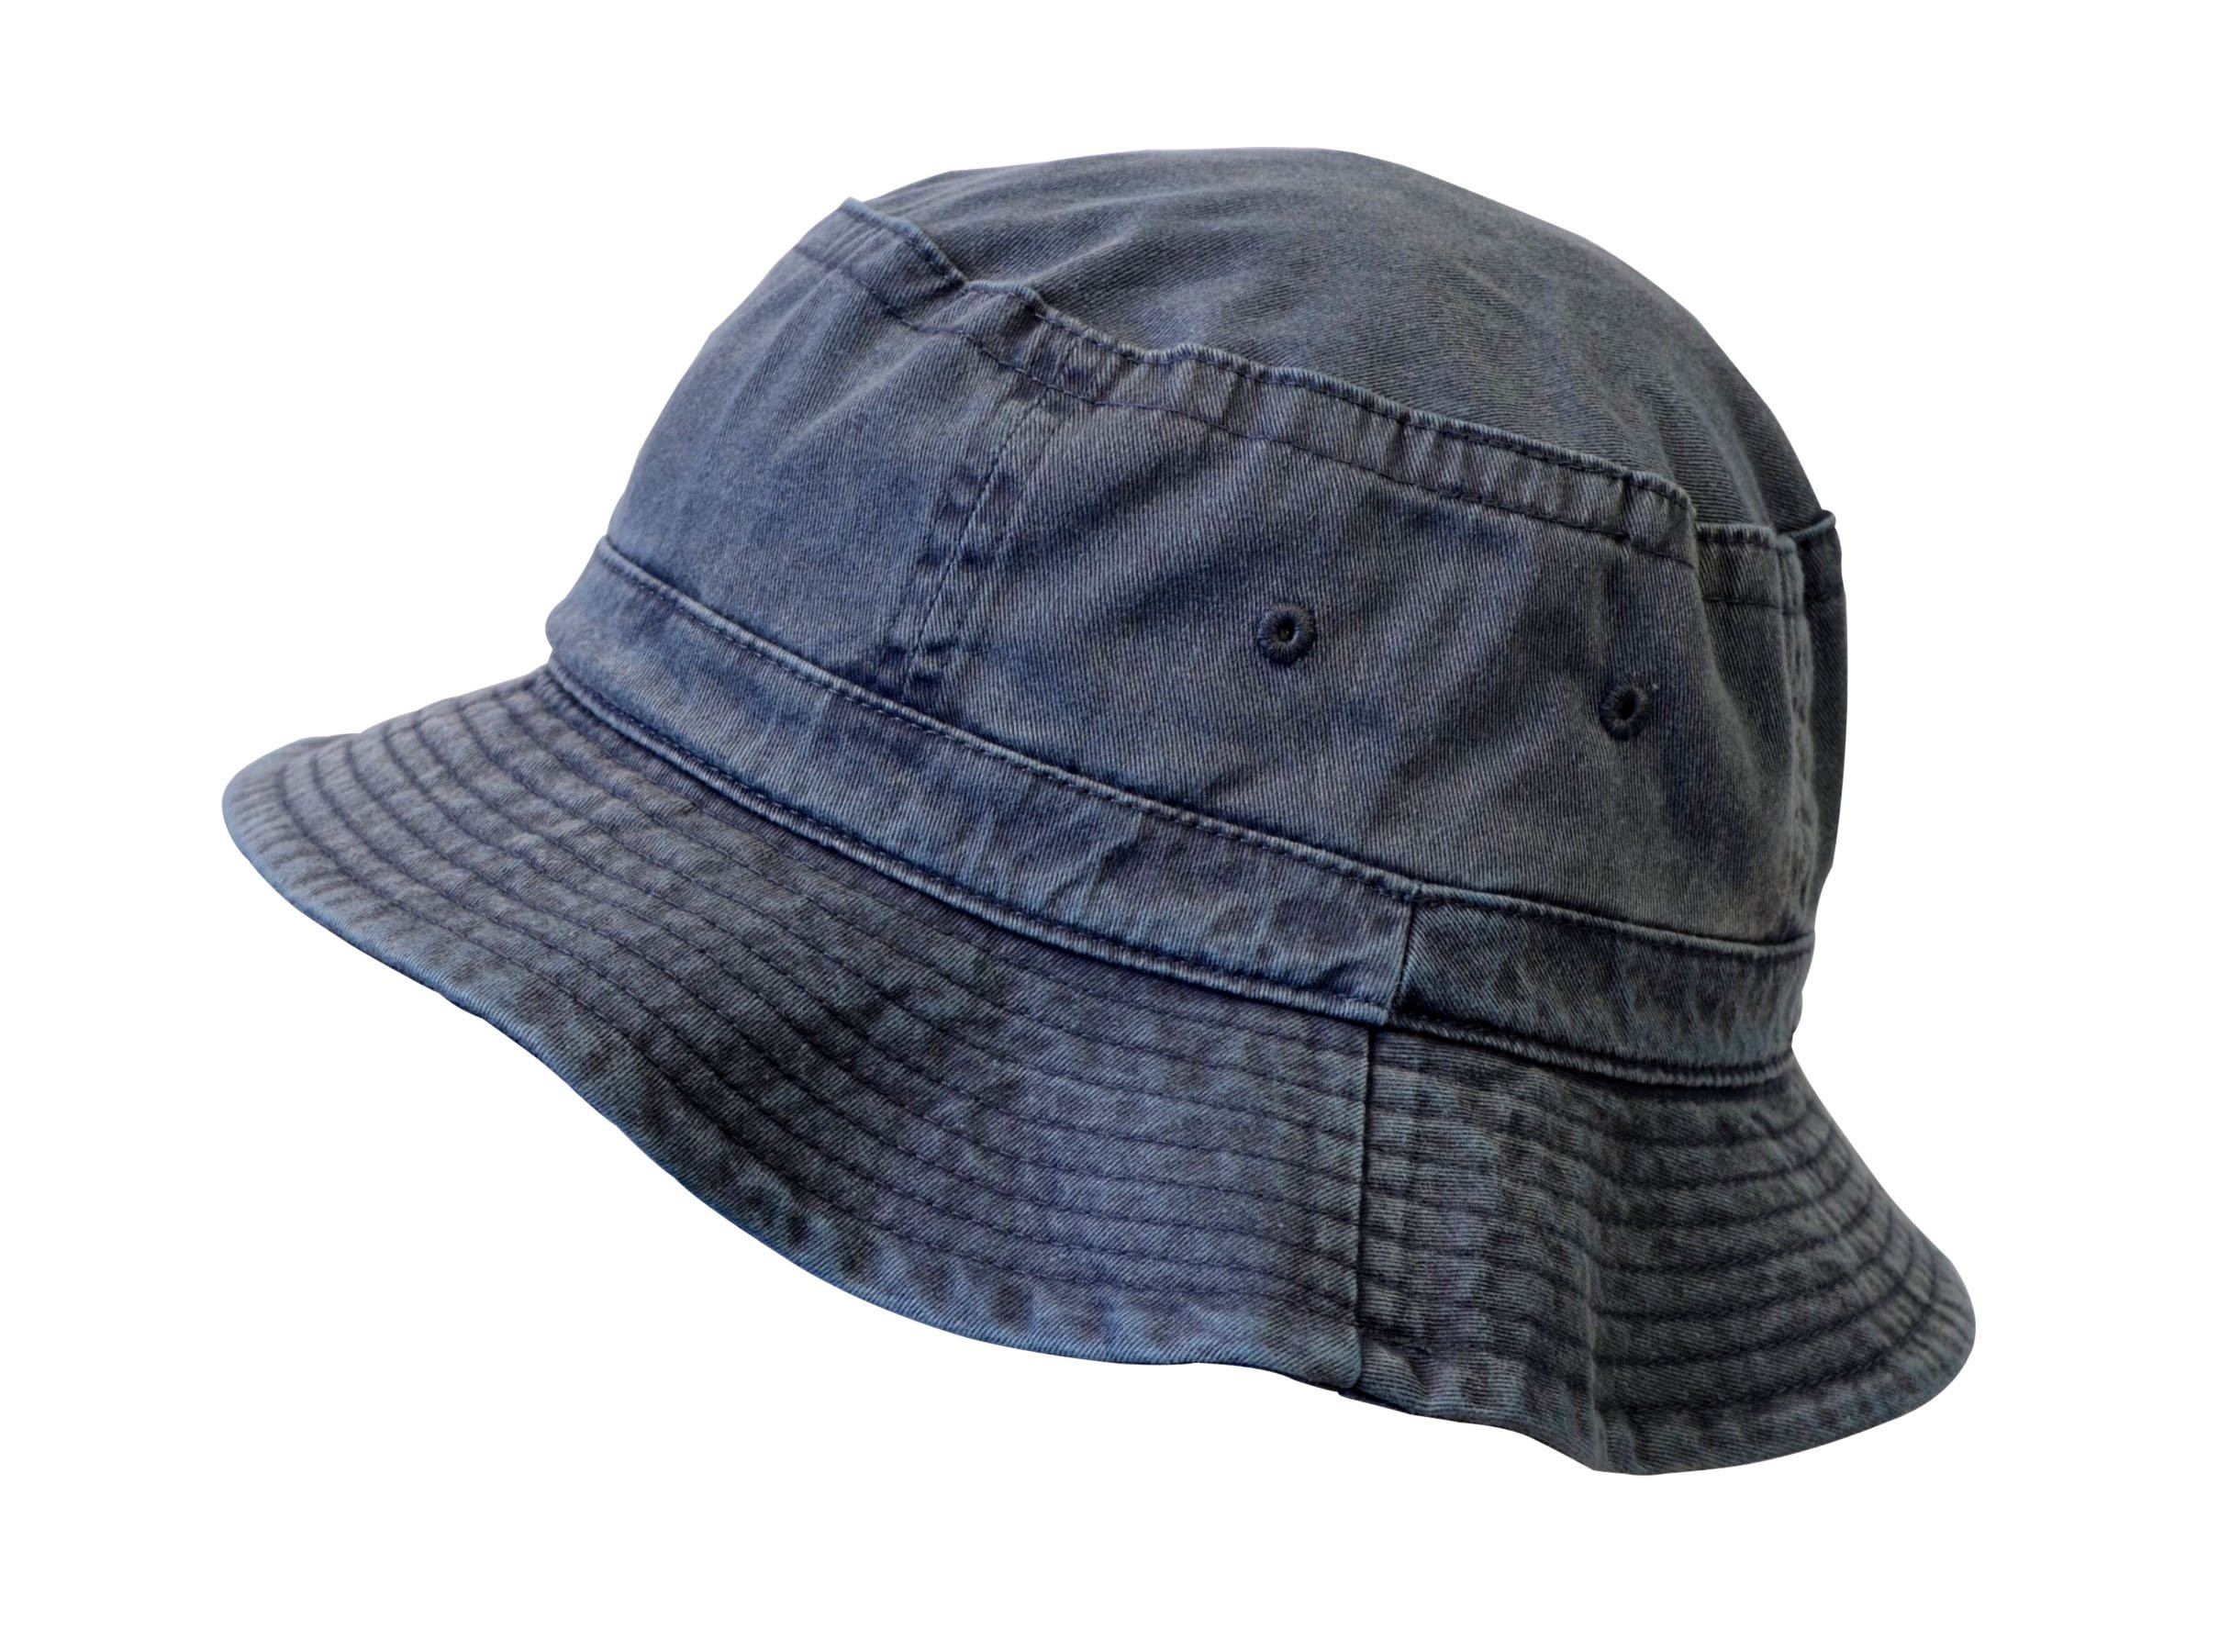 KC Caps Denim Summer Bucket Hat, Unisex Pigment Dyed Washed Garment Outdoor Hat